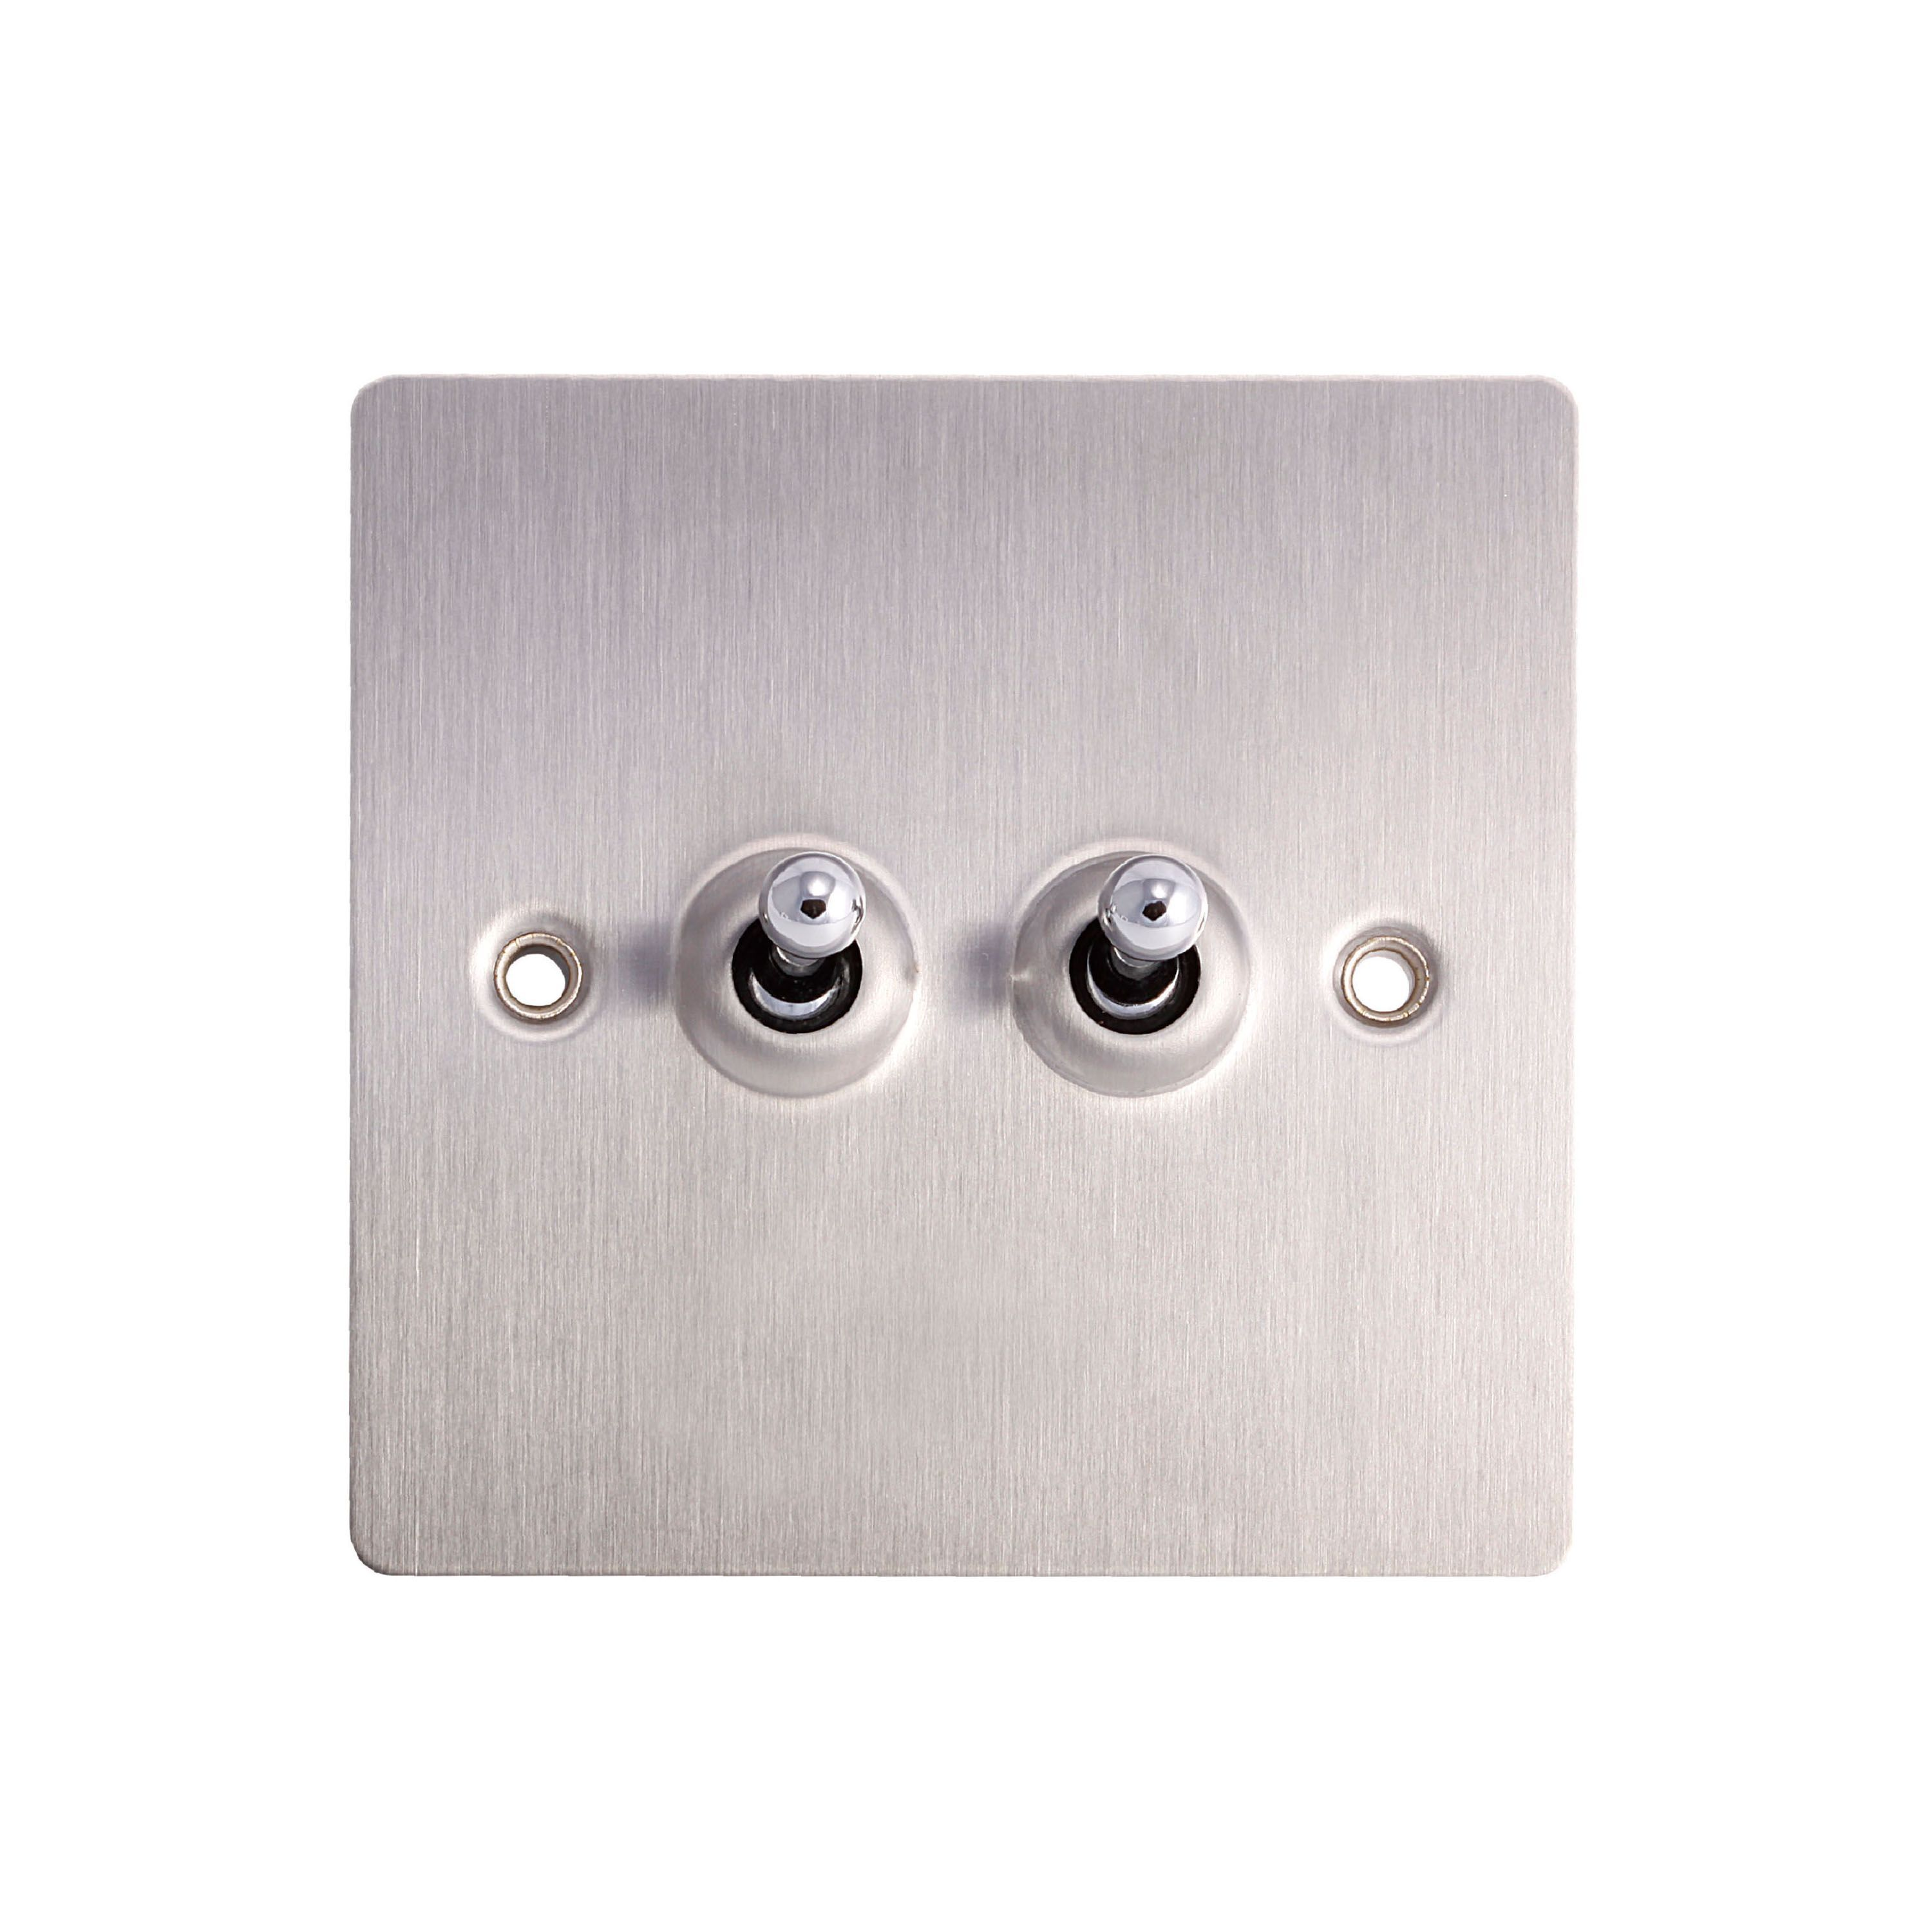 Holder 10a 2-way Double Brushed Steel Toggle Switch